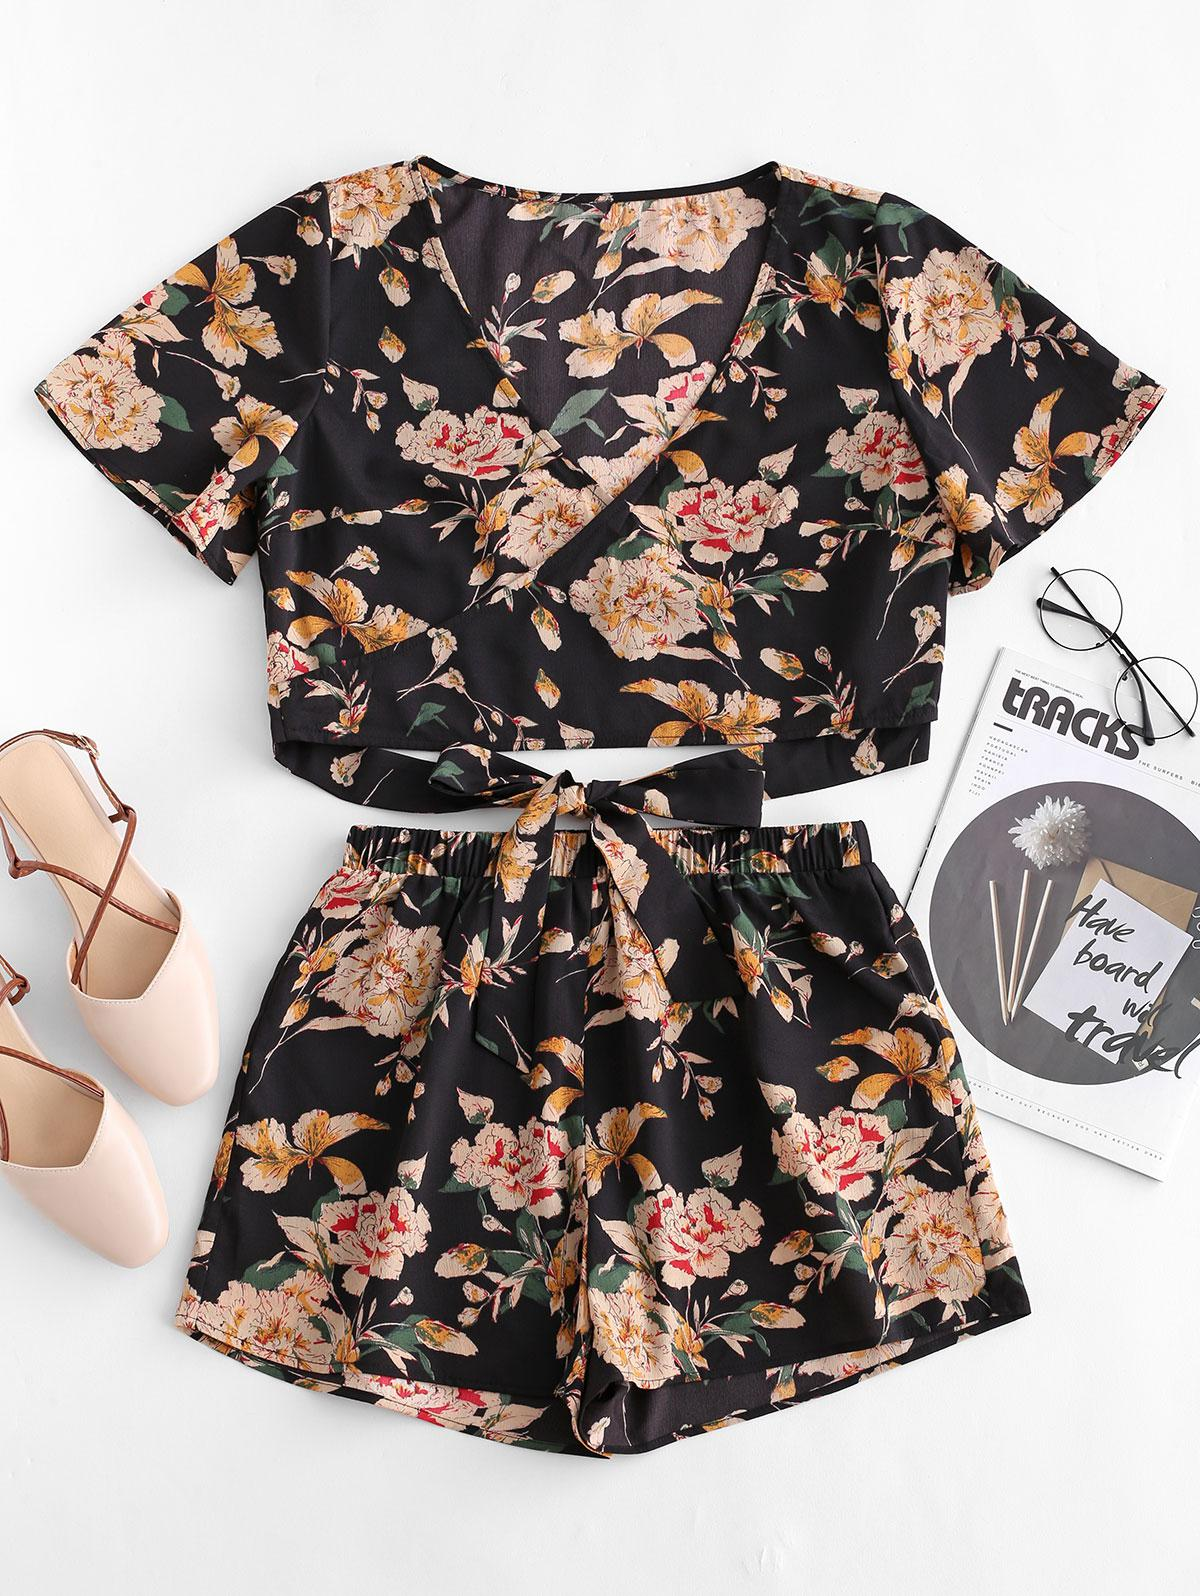 ZAFUL Knotted Floral Print Top and Shorts Set, Black